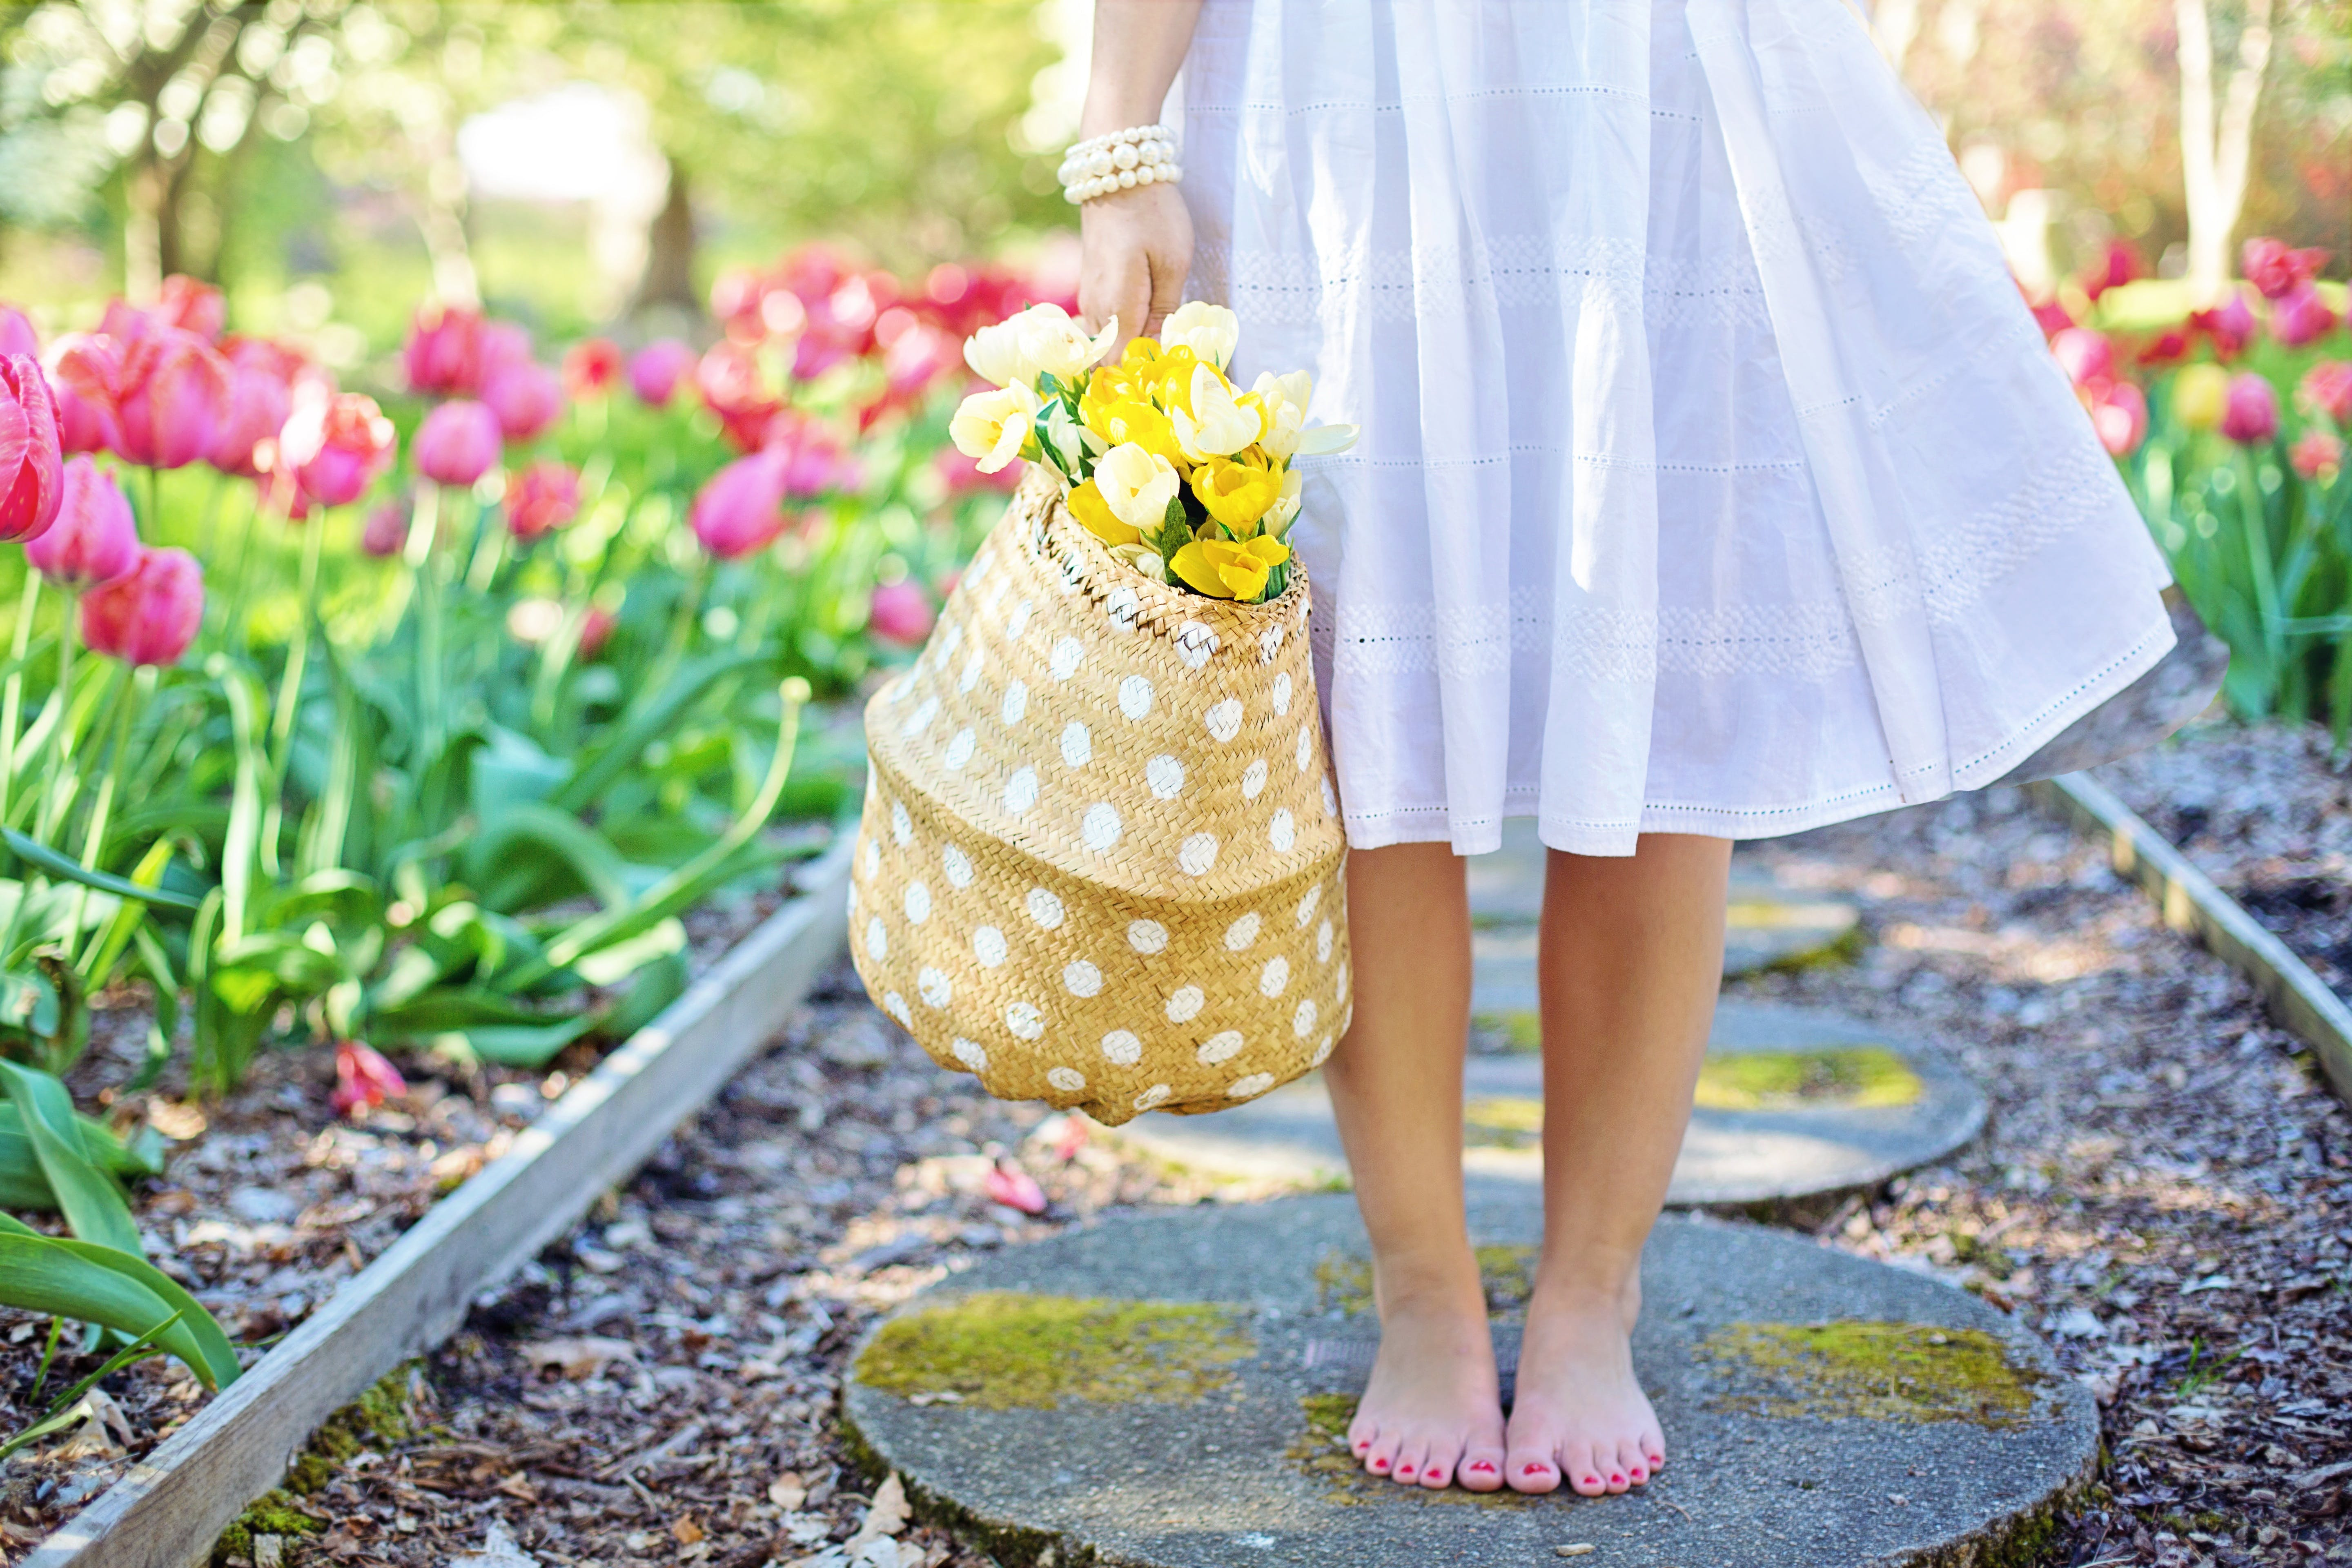 barefoot, basket, blooming - Haven Holidays